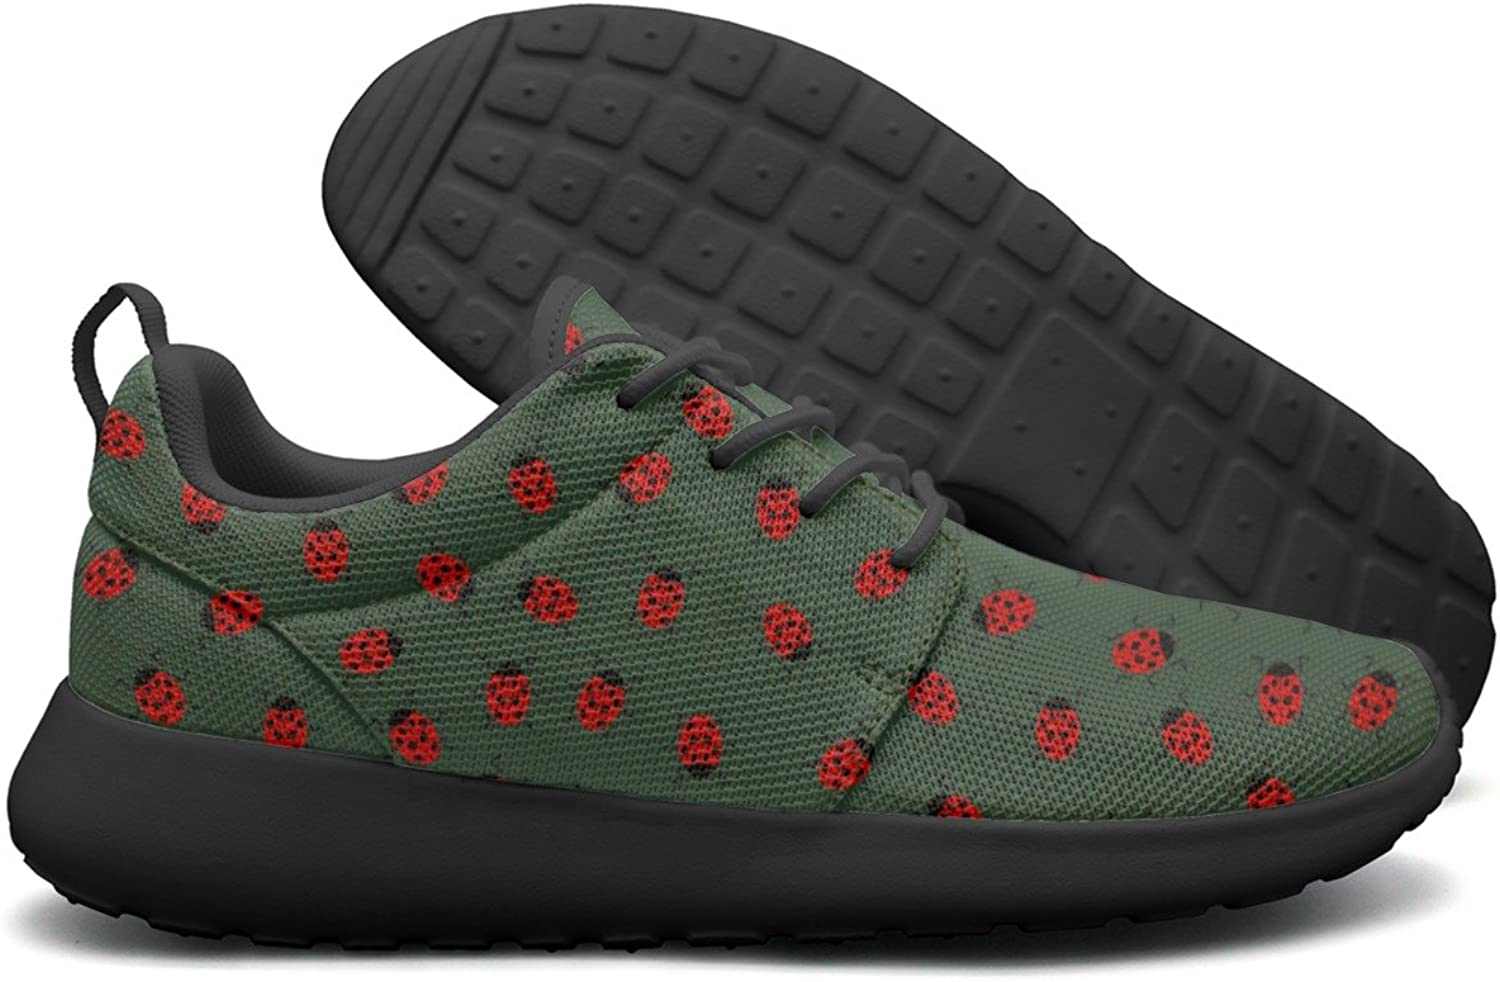 Ladybug Birthday Party Supplies Womens Camping Sports Running shoes Unique colorful